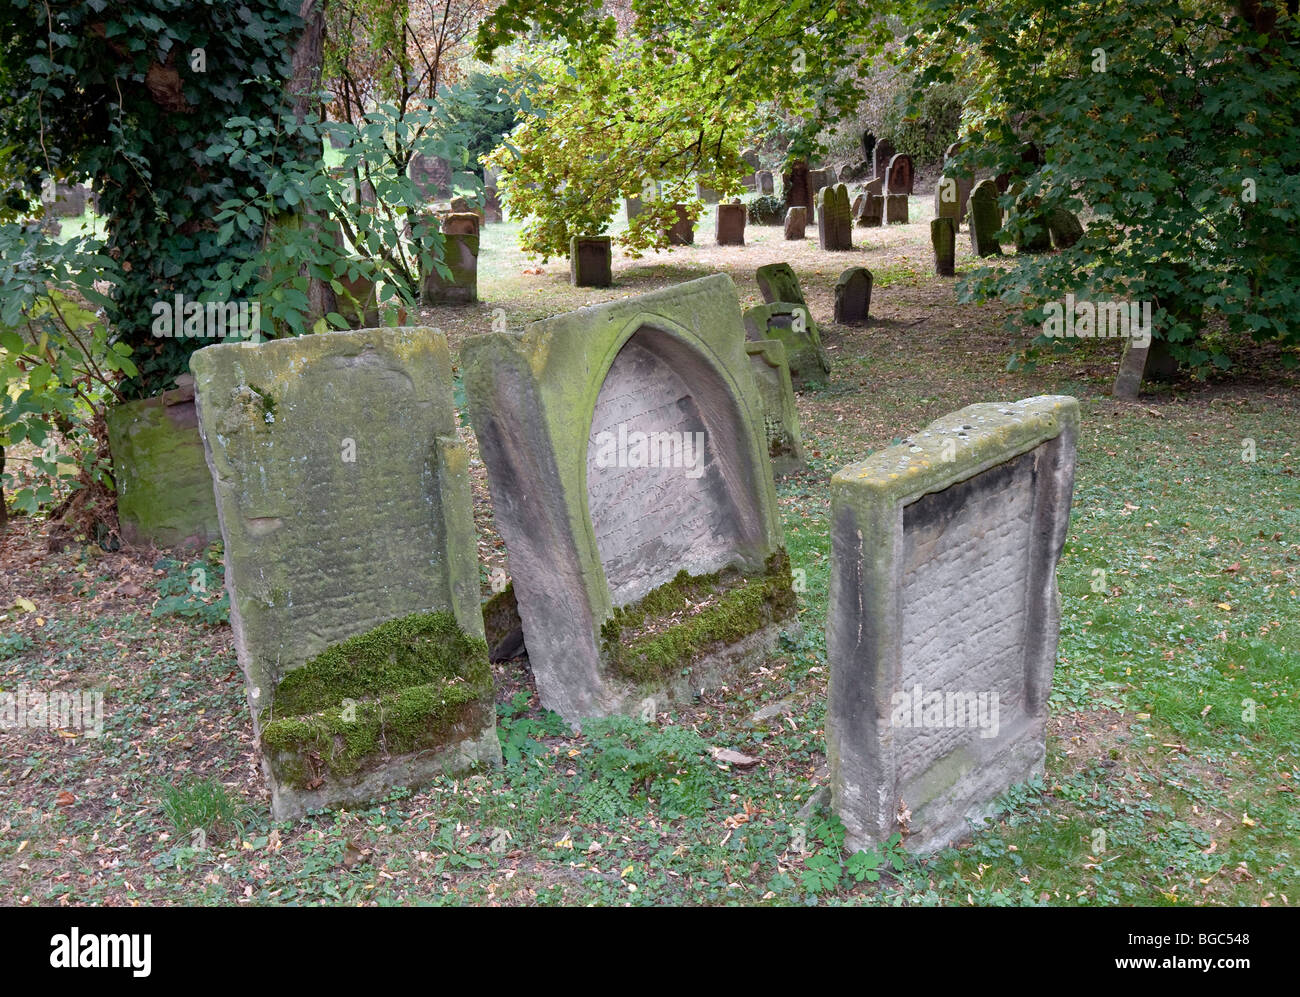 The Heiliger Sand Jewish Cemetery in Worms, Rhineland-Palatinate, Germany, Europe - Stock Image